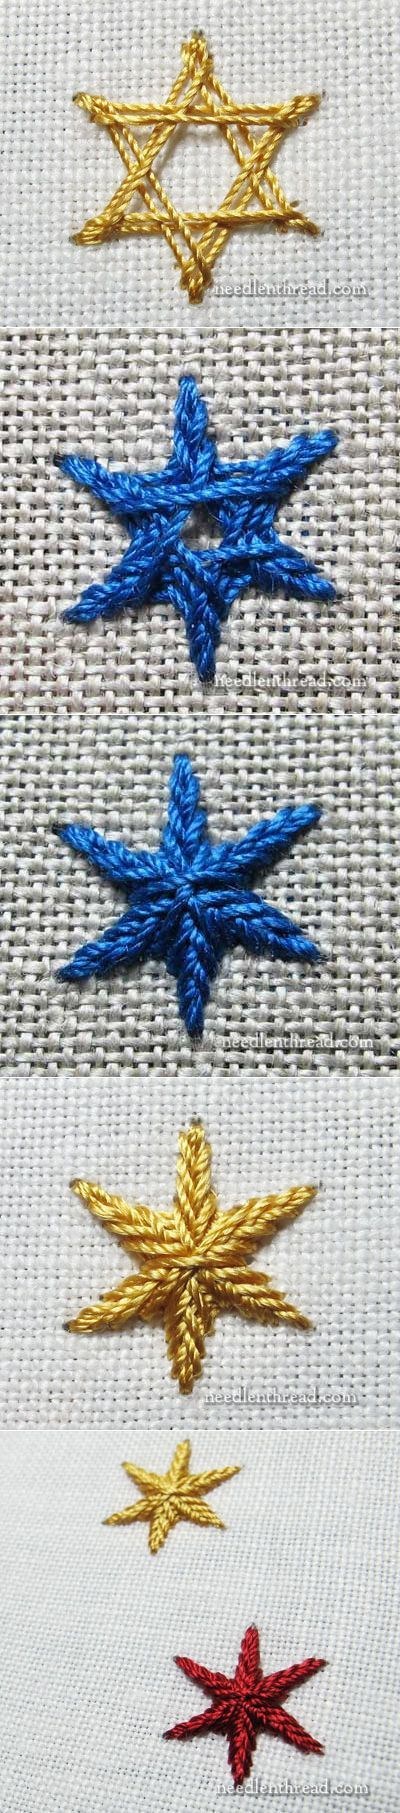 ч.3 Stitch Fun: Star Stitch – for Stars and Snowflakes – Needle'nThread.com